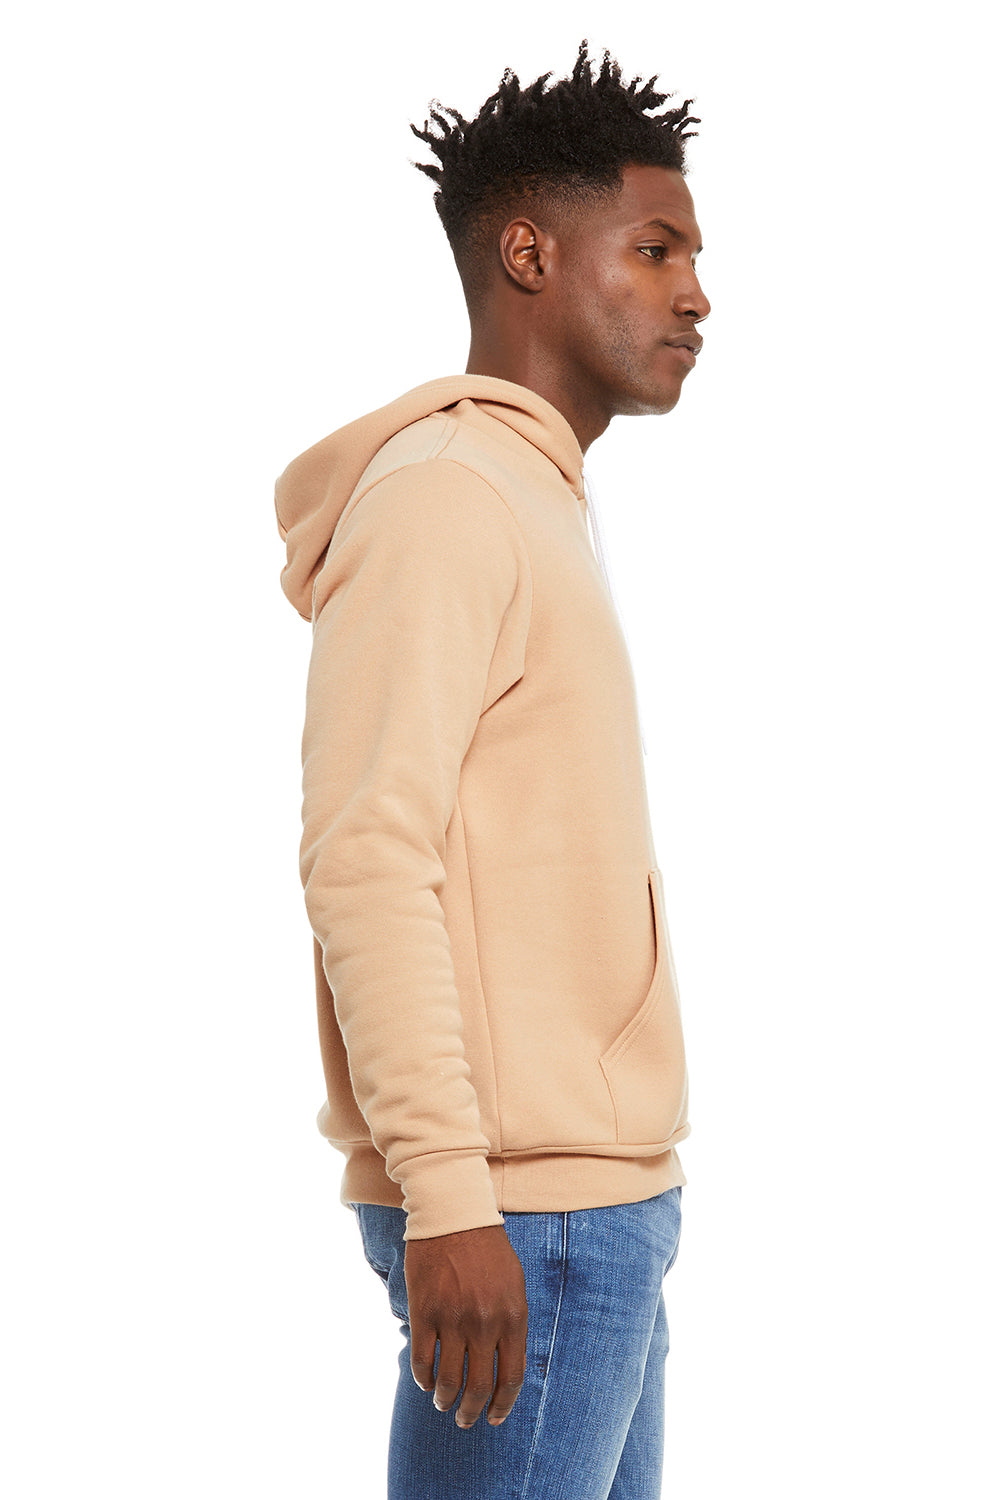 Bella + Canvas 3719 Sponge Fleece Hooded Sweatshirt Hoodie Heather Sand Dune Side